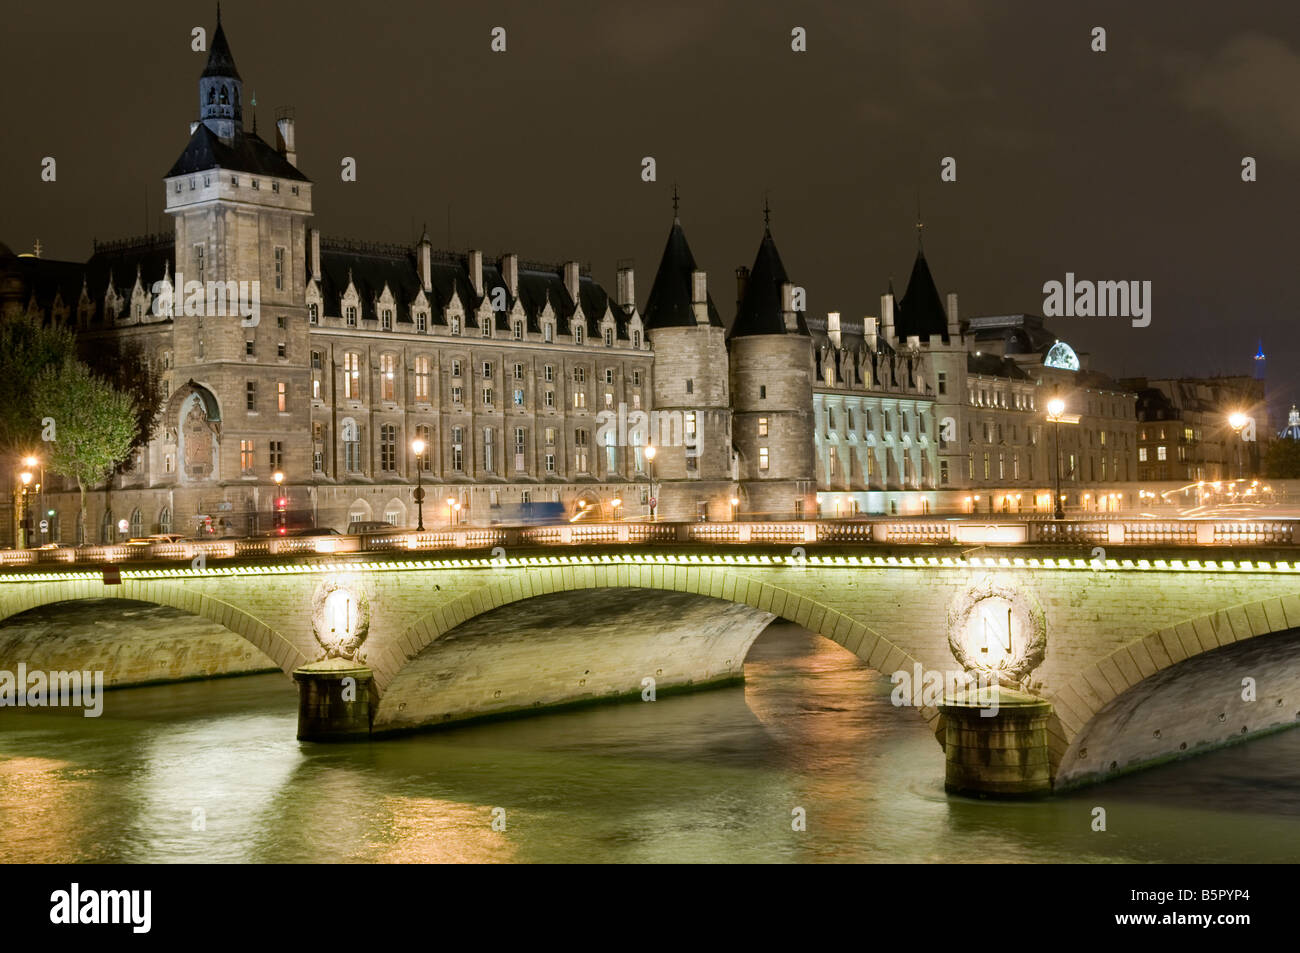 Pont Neuf and France Institute at night, Paris France. - Stock Image